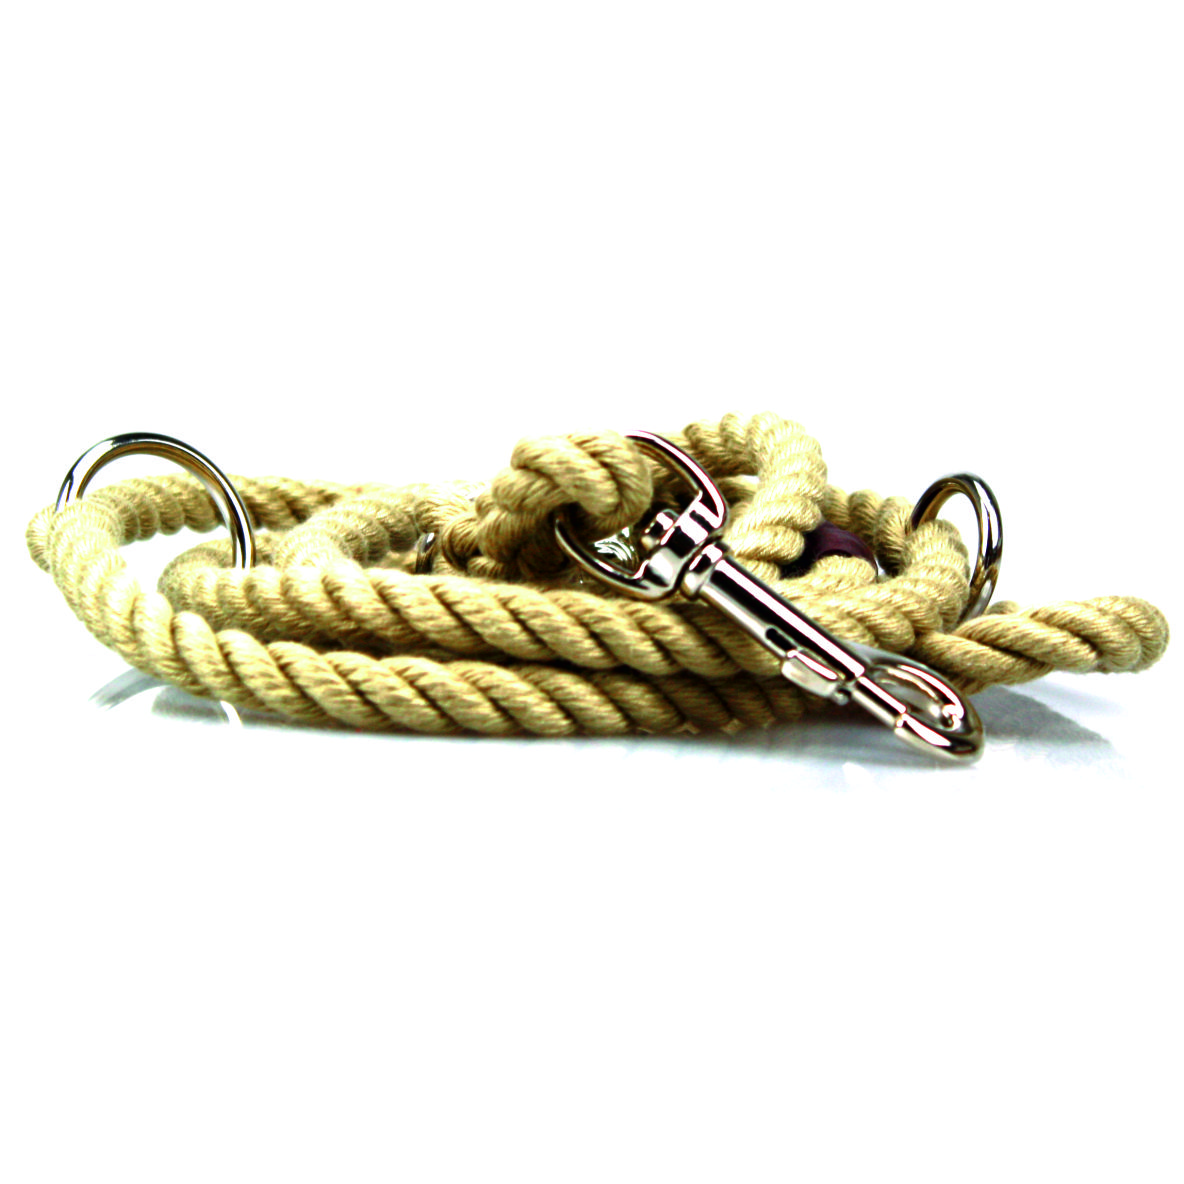 Leine Rope Long 2m